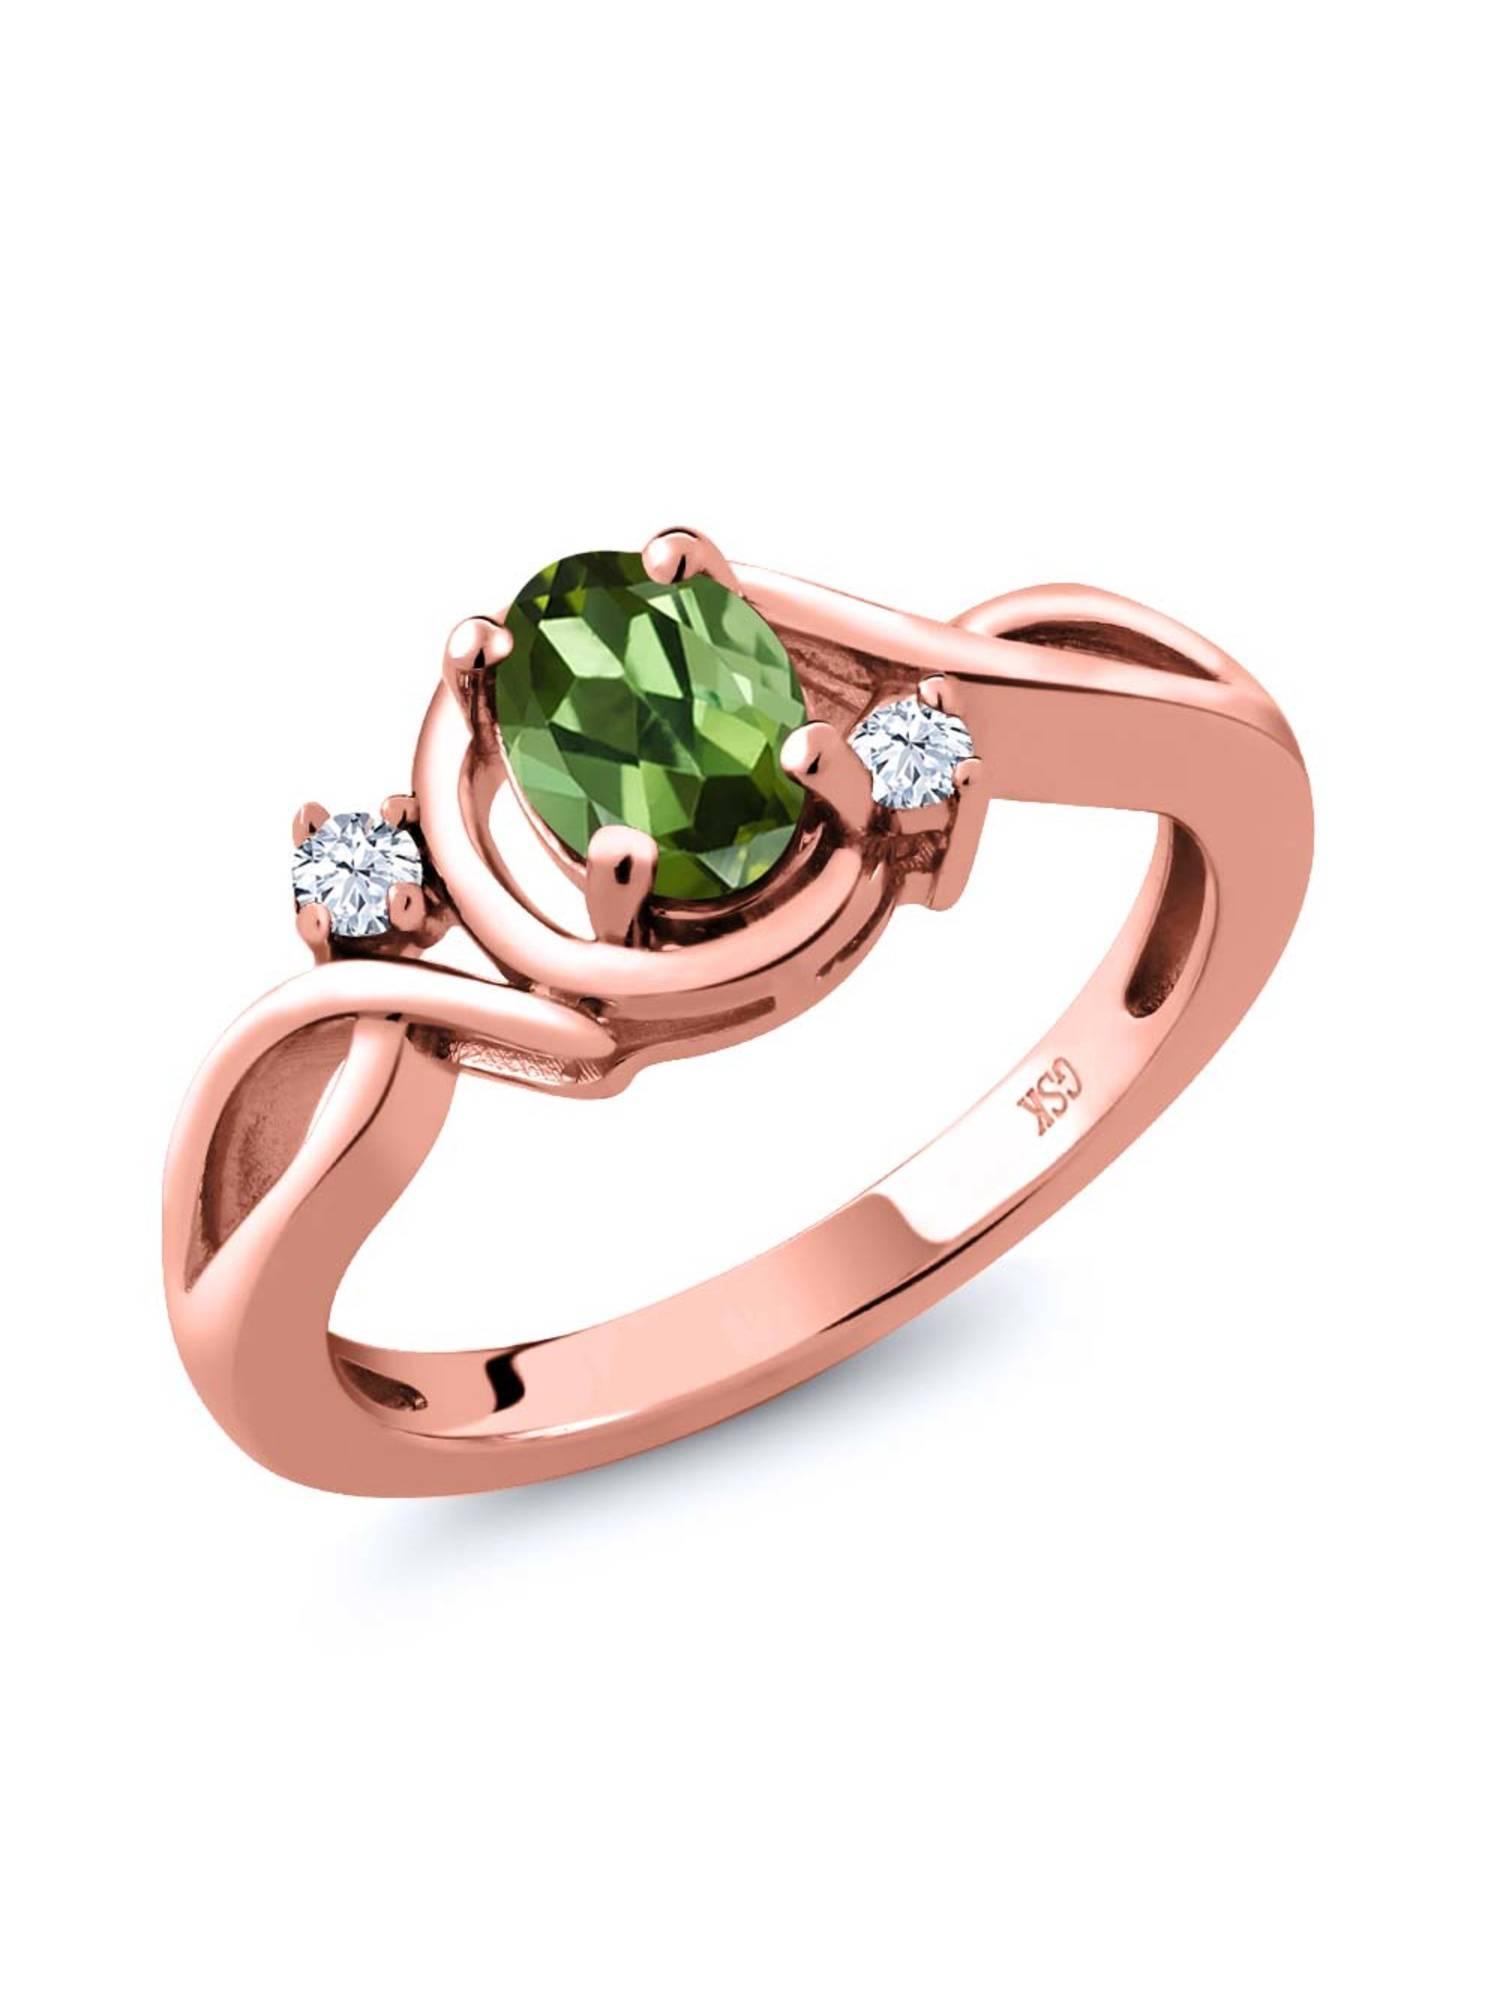 0.78 Ct Oval Green Tourmaline White Topaz 18K Rose Gold Plated Silver Ring by